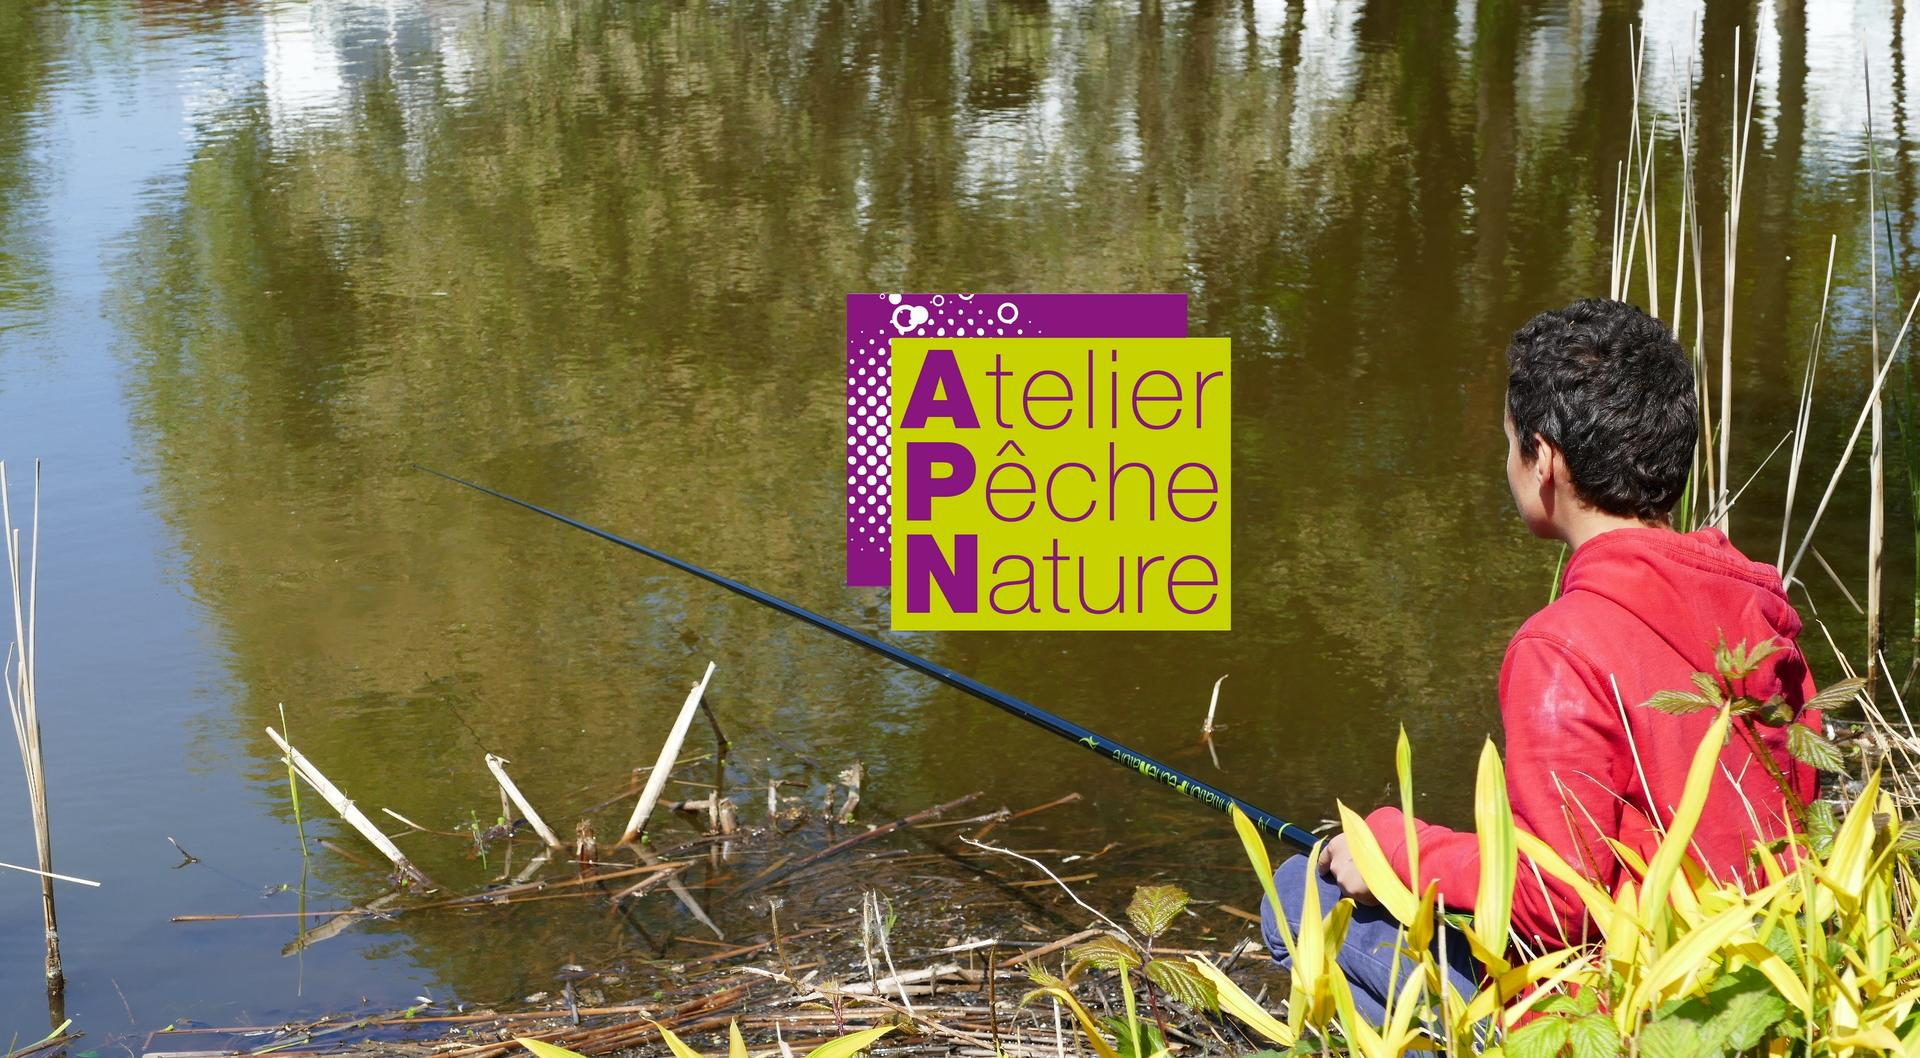 Events…Put it in your diary : Atelier Initiation à la pêche nature pour ados de 9 à 15 ans (4 jours)